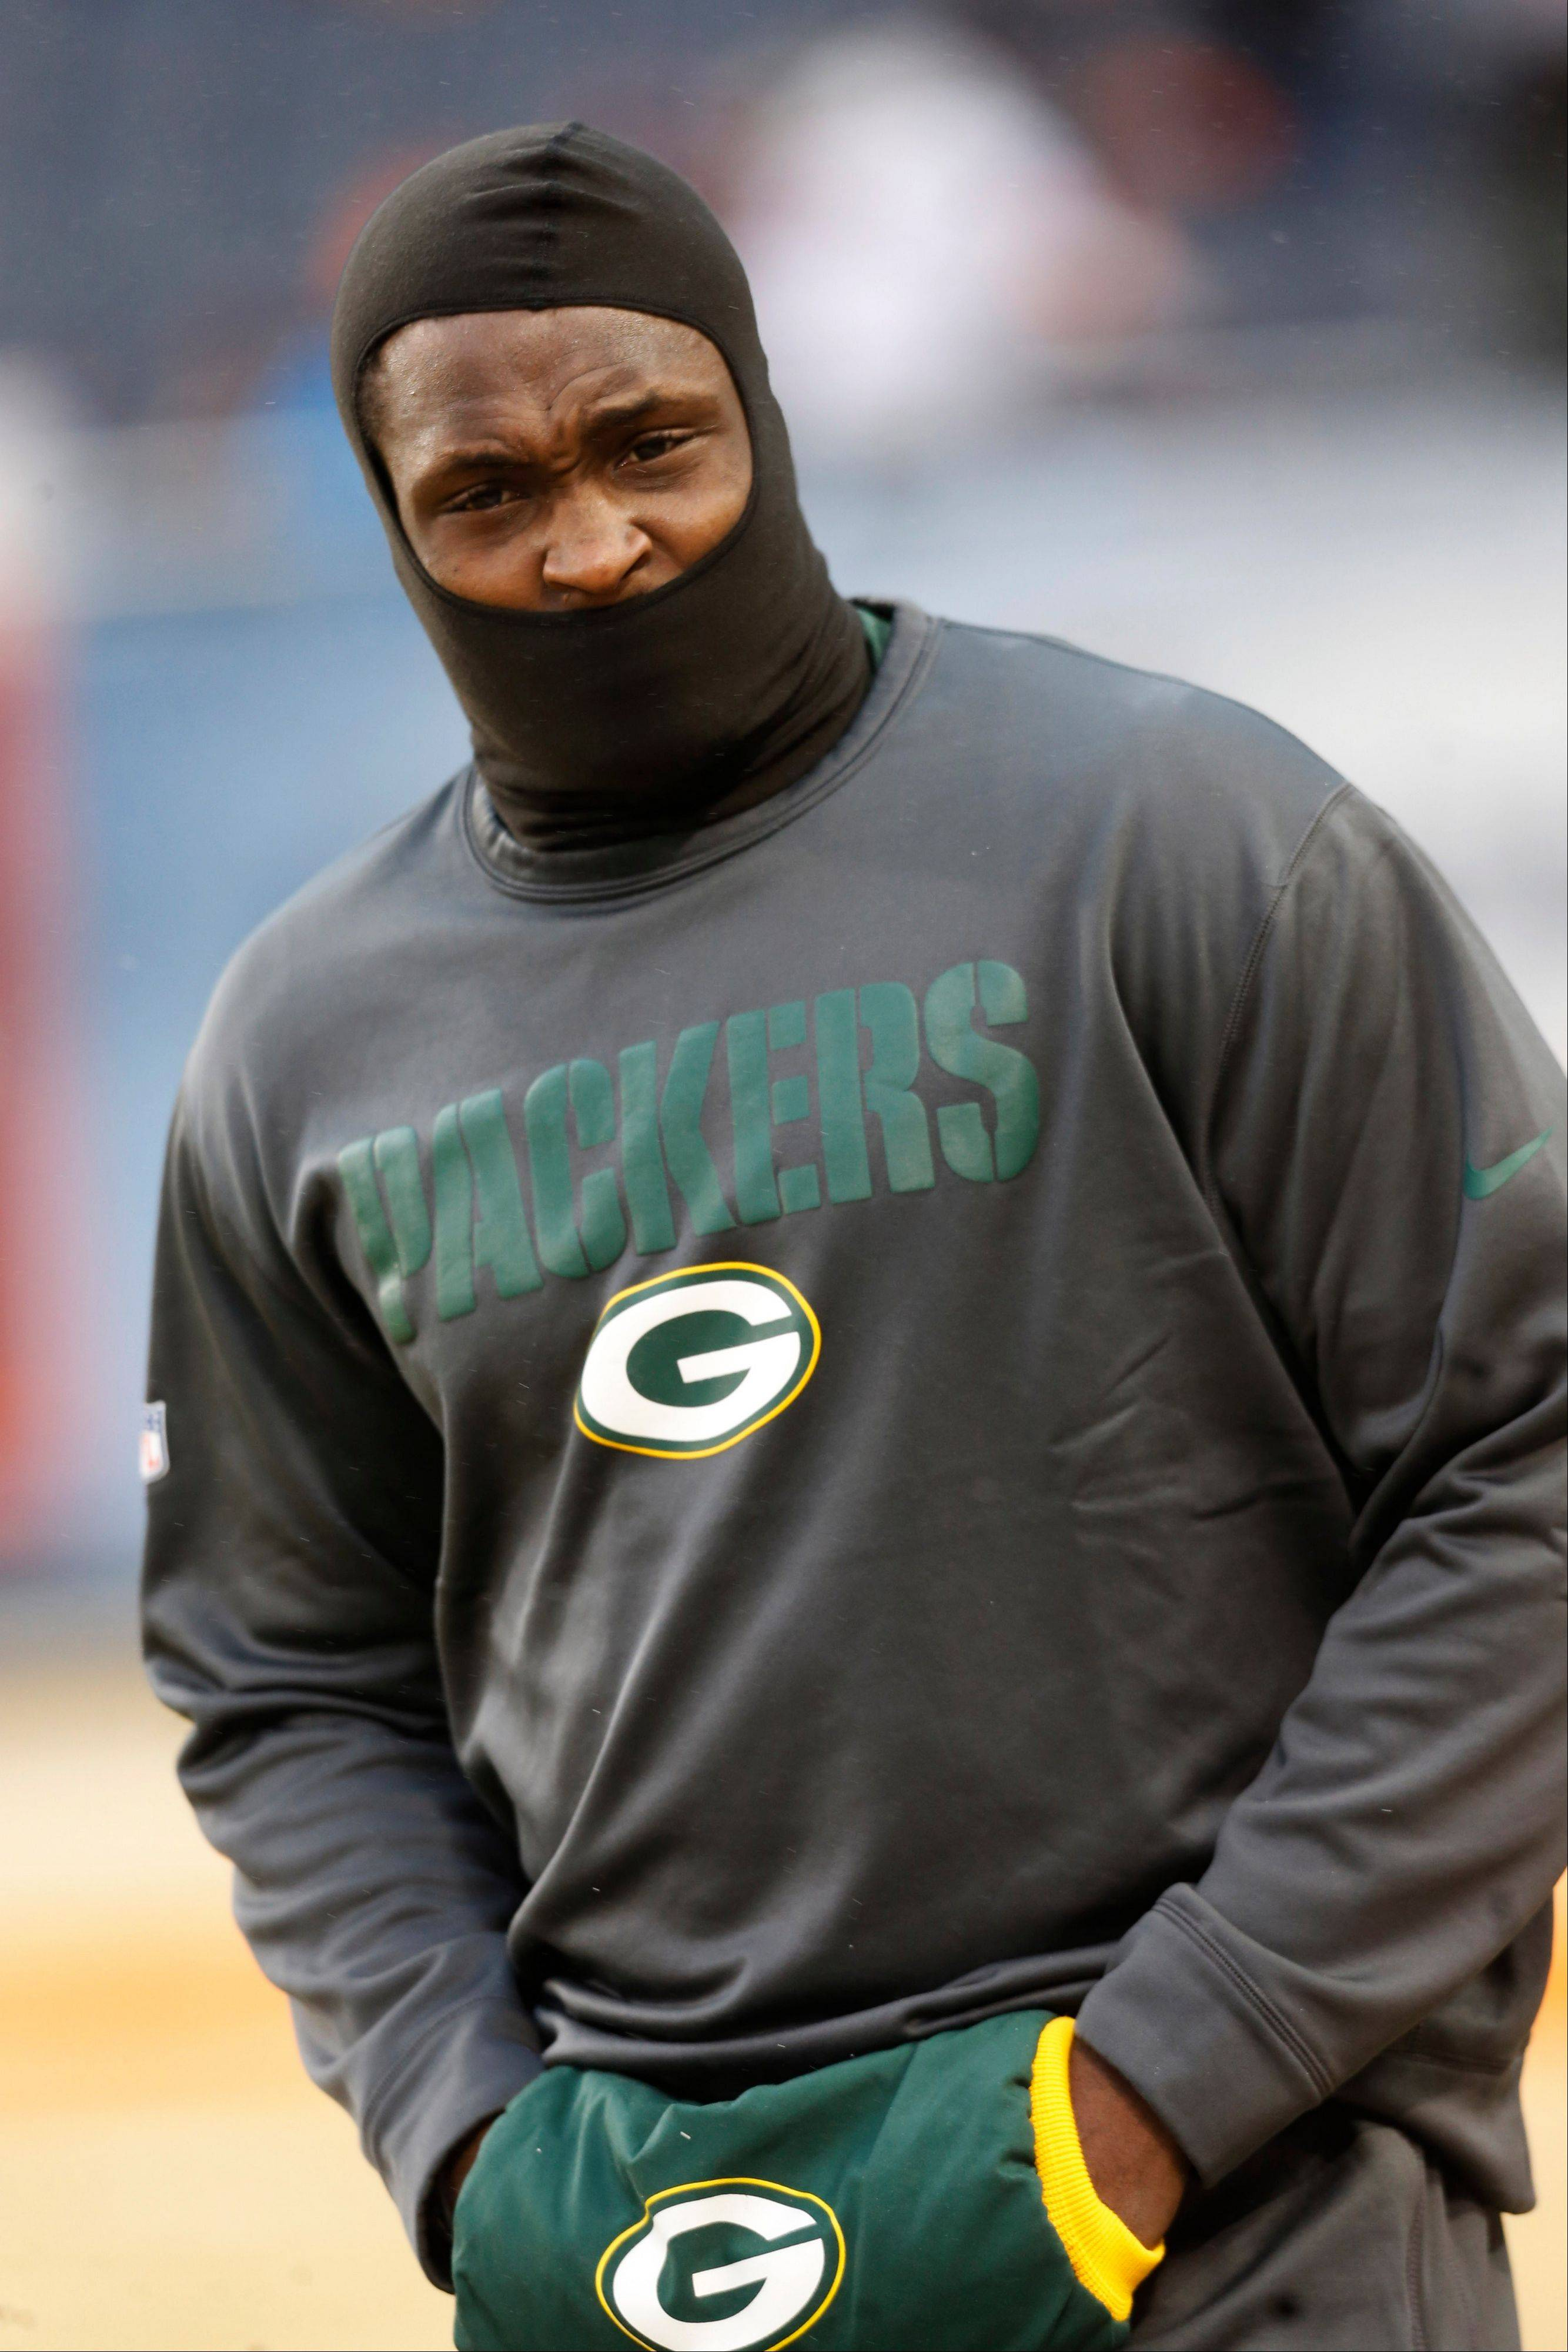 Green Bay linebacker Nate Palmer bundles up before last week's game against the Bears at Soldier Field. Temperatures will be in the single digits and dropping when the San Francisco 49ers and Packers kick off Sunday afternoon.